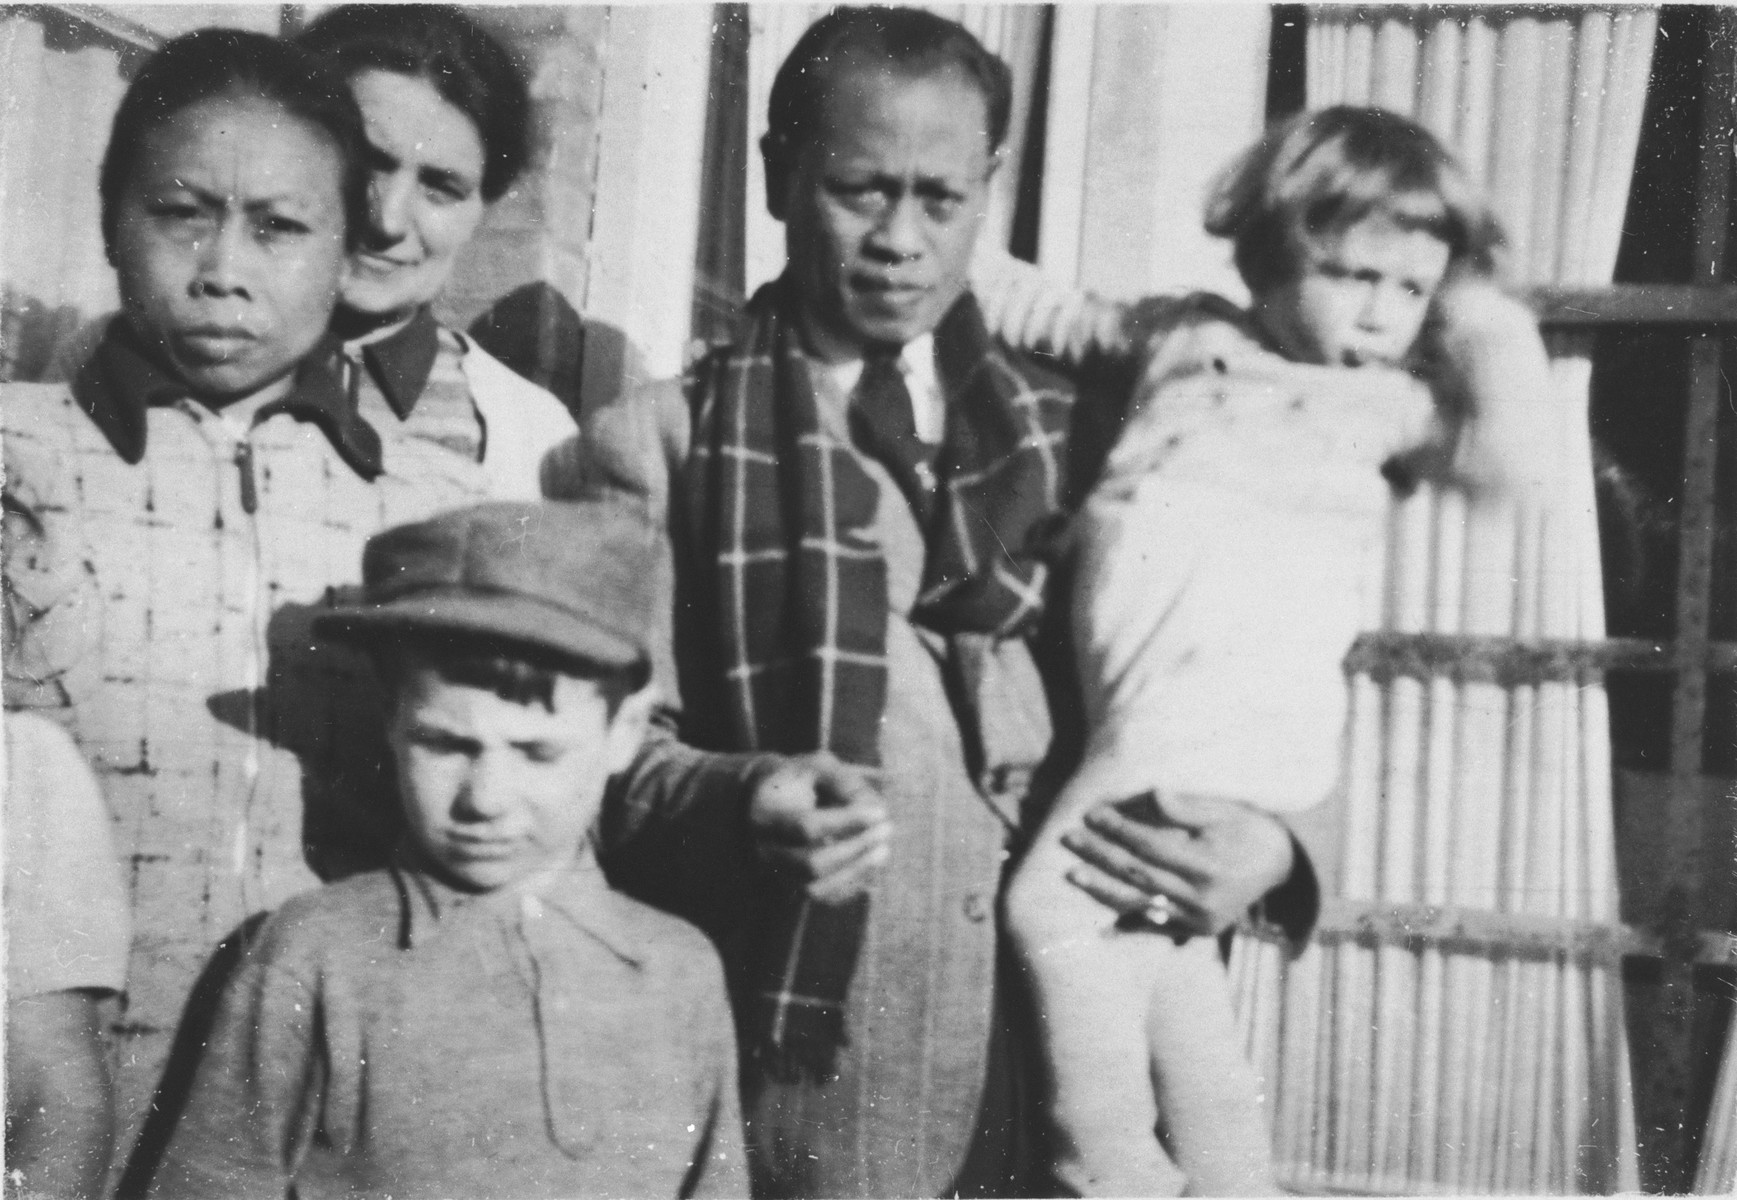 Indonesian-Dutch rescuers pose with the Jewish child they are hiding in The Hague.  Among those pictured are Alfred Münzer (right), Tolé Madna (center, holding Alfred) and Mima Saïna (left).